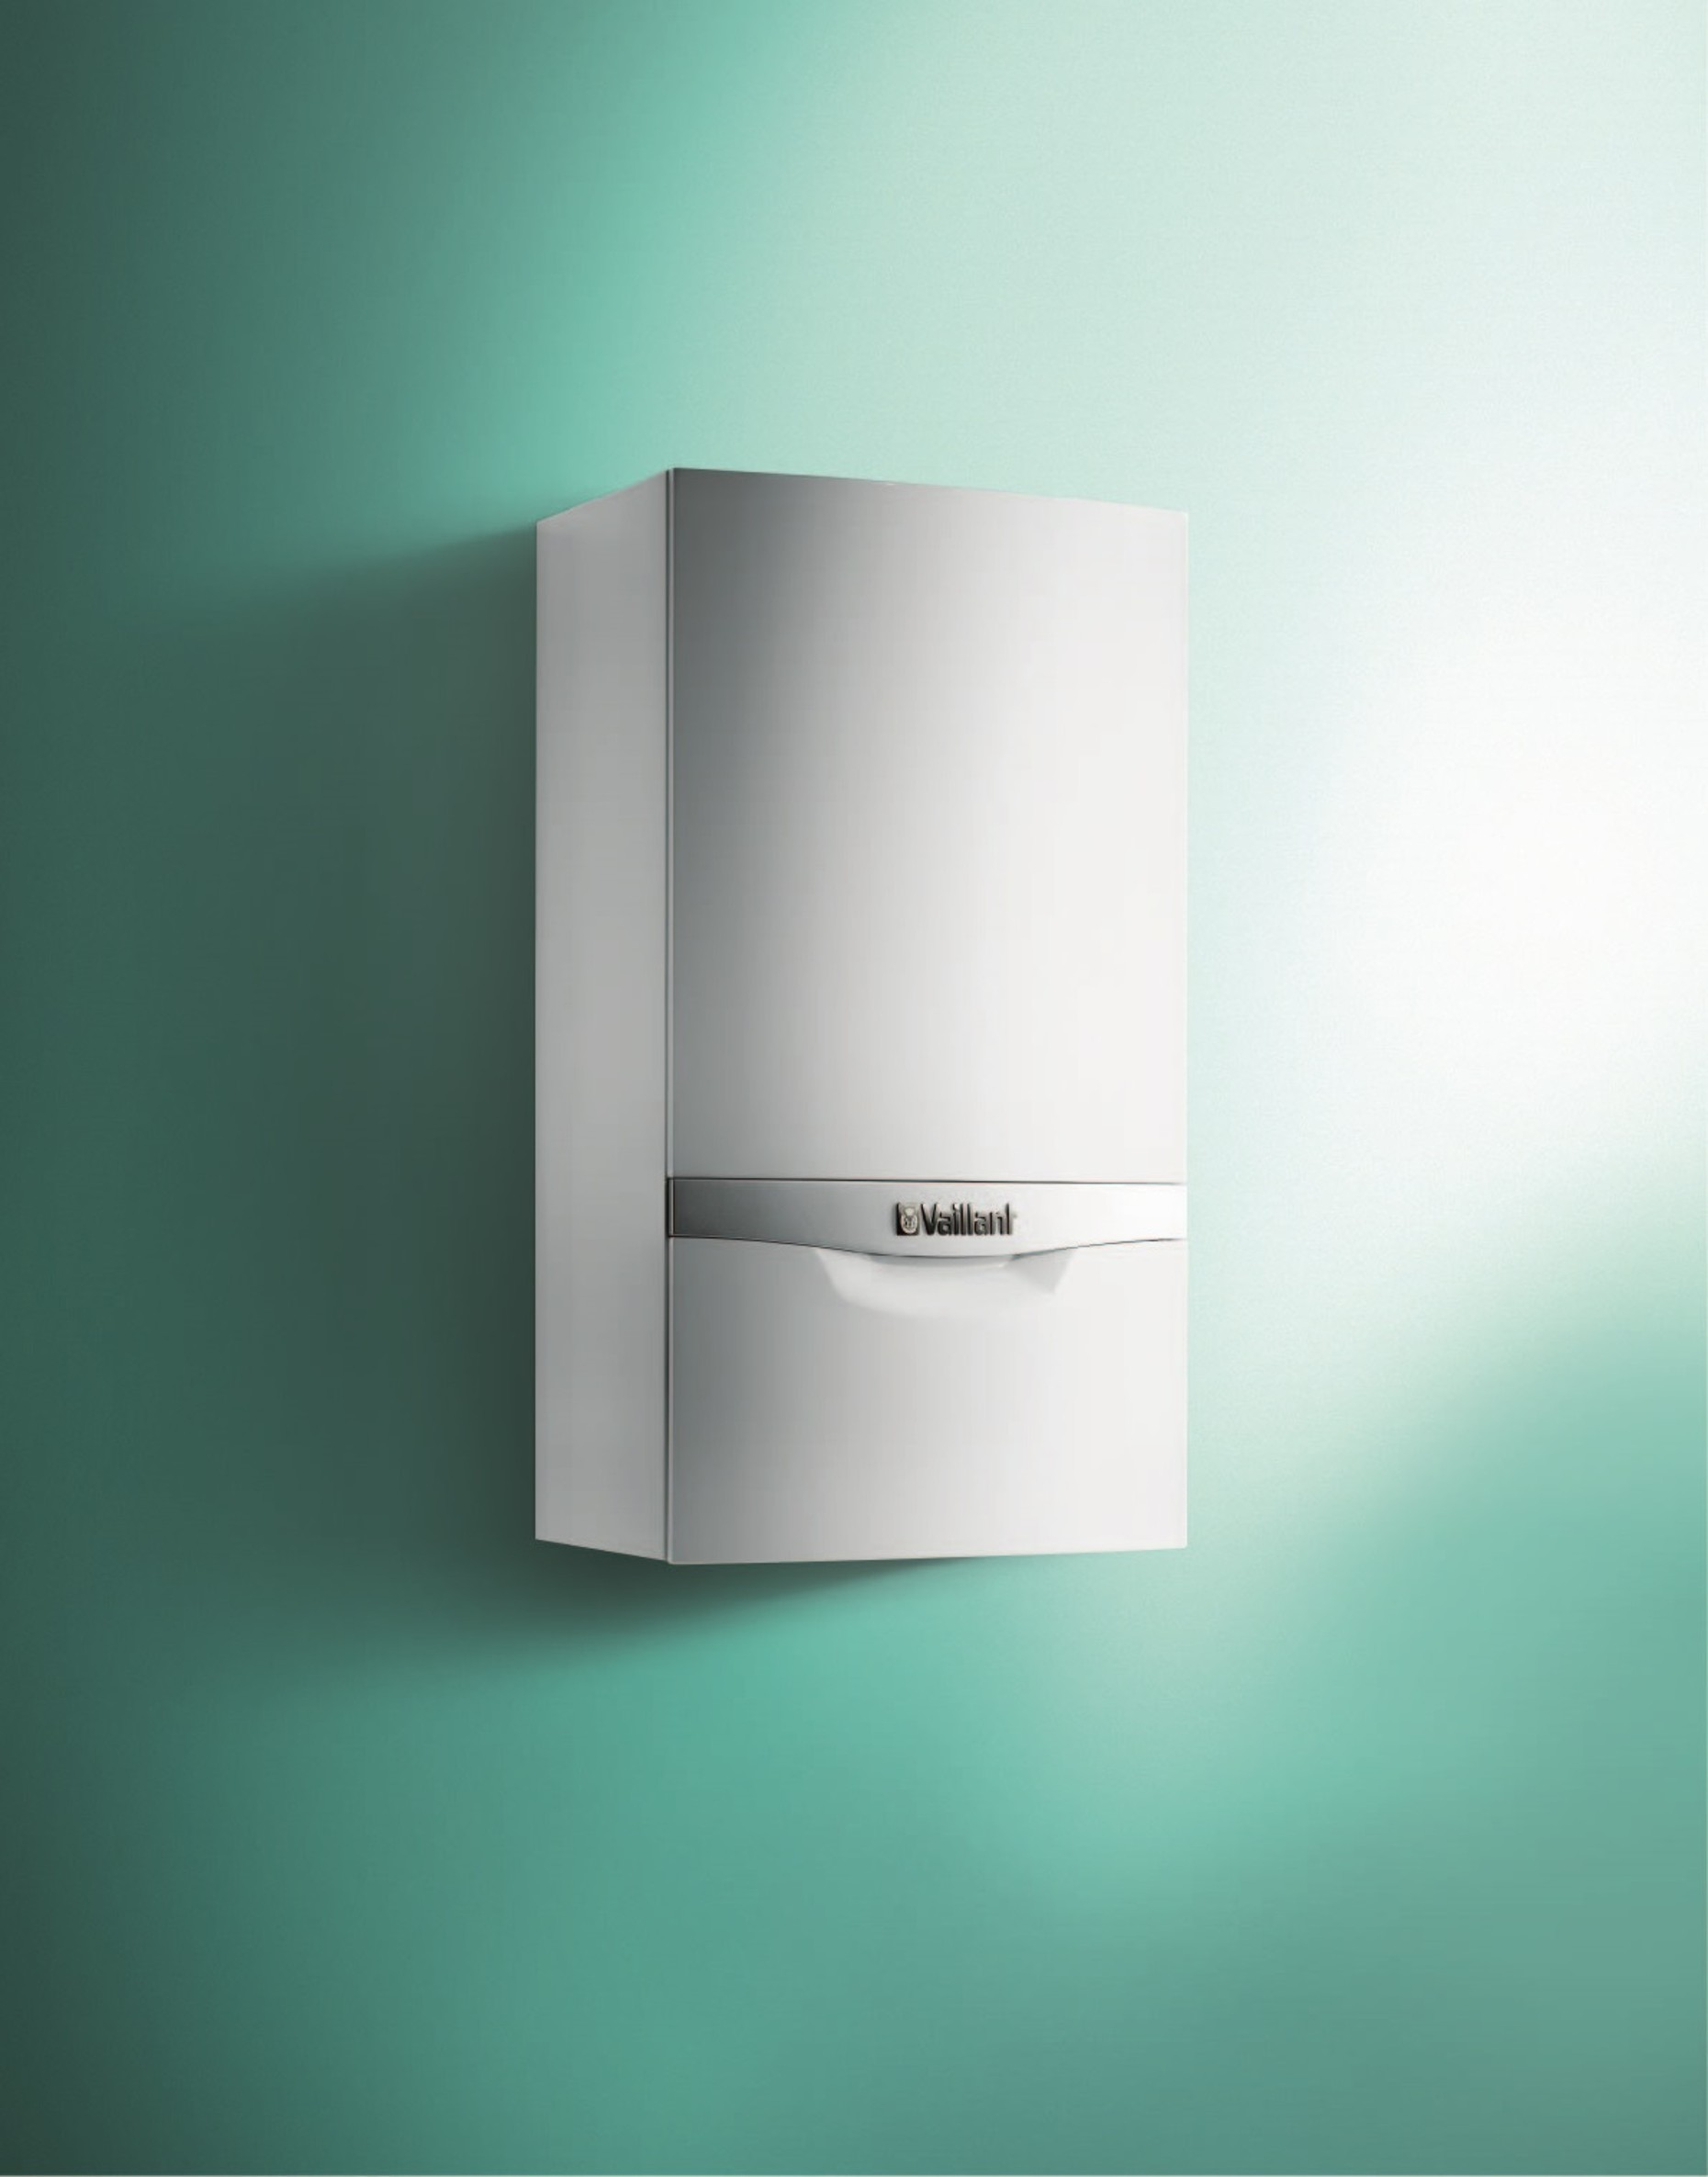 купить котел Vaillant turboTEC plus VUW 242 5 5,котел Vaillant turboTEC plus VUW 242 5 5,Vaillant turboTEC plus VUW 242 5 5,котел Vaillant turboTEC plus VUW 242 5 5 цена,котел ваиллант турботек плюс вув 242 5 5